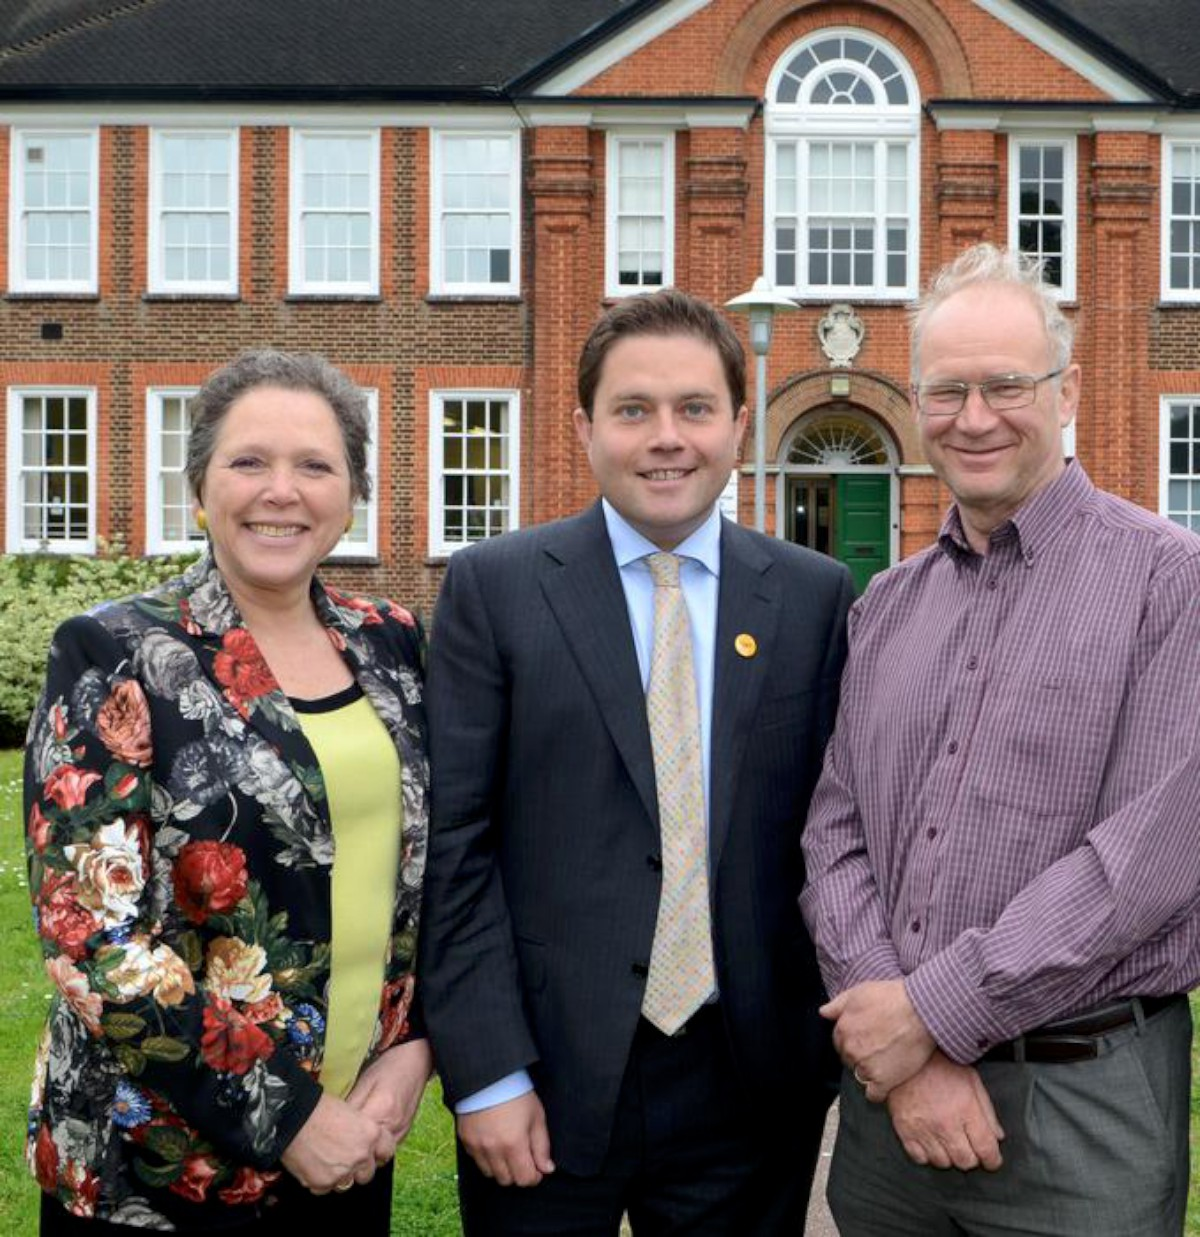 Former lead member for schools David Ryder-Mills, right, with ex-Lib Dem parliamentary candidate Robin Meltzer and former north Kingston MP Susan Kramer outside the soon to be Kingston Academy